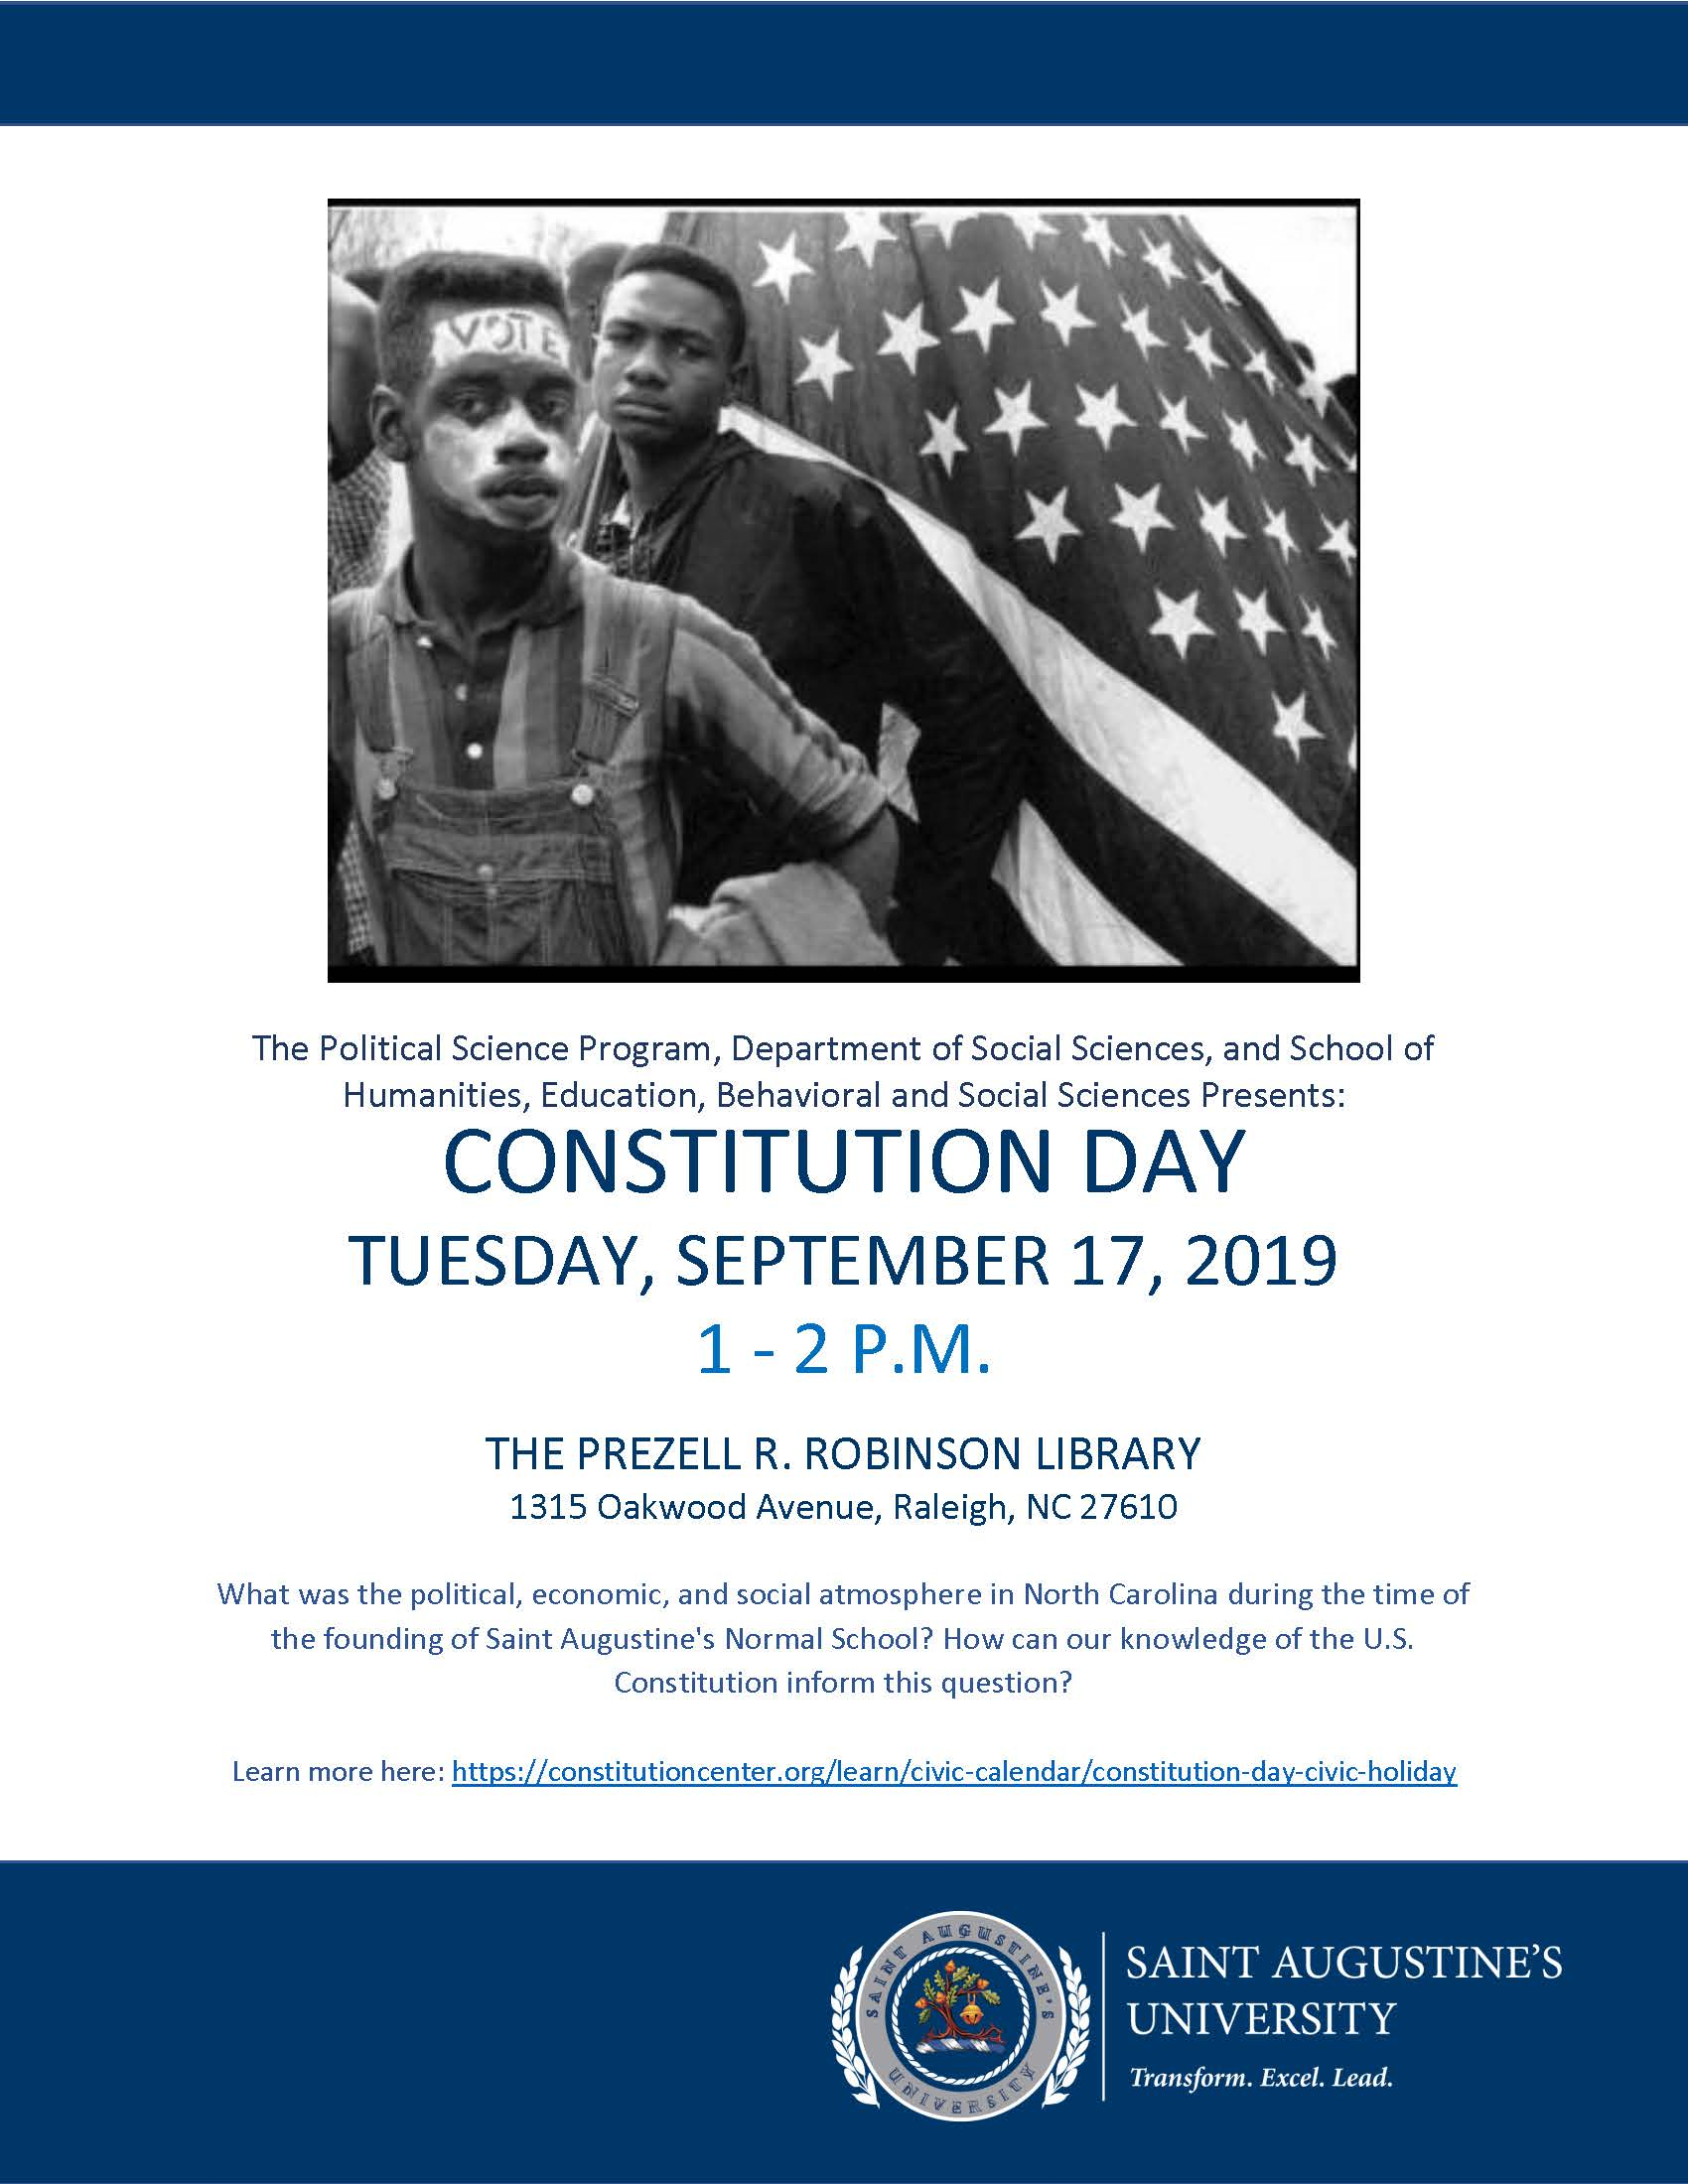 Constitution Day Flyer at Saint Augustine's University